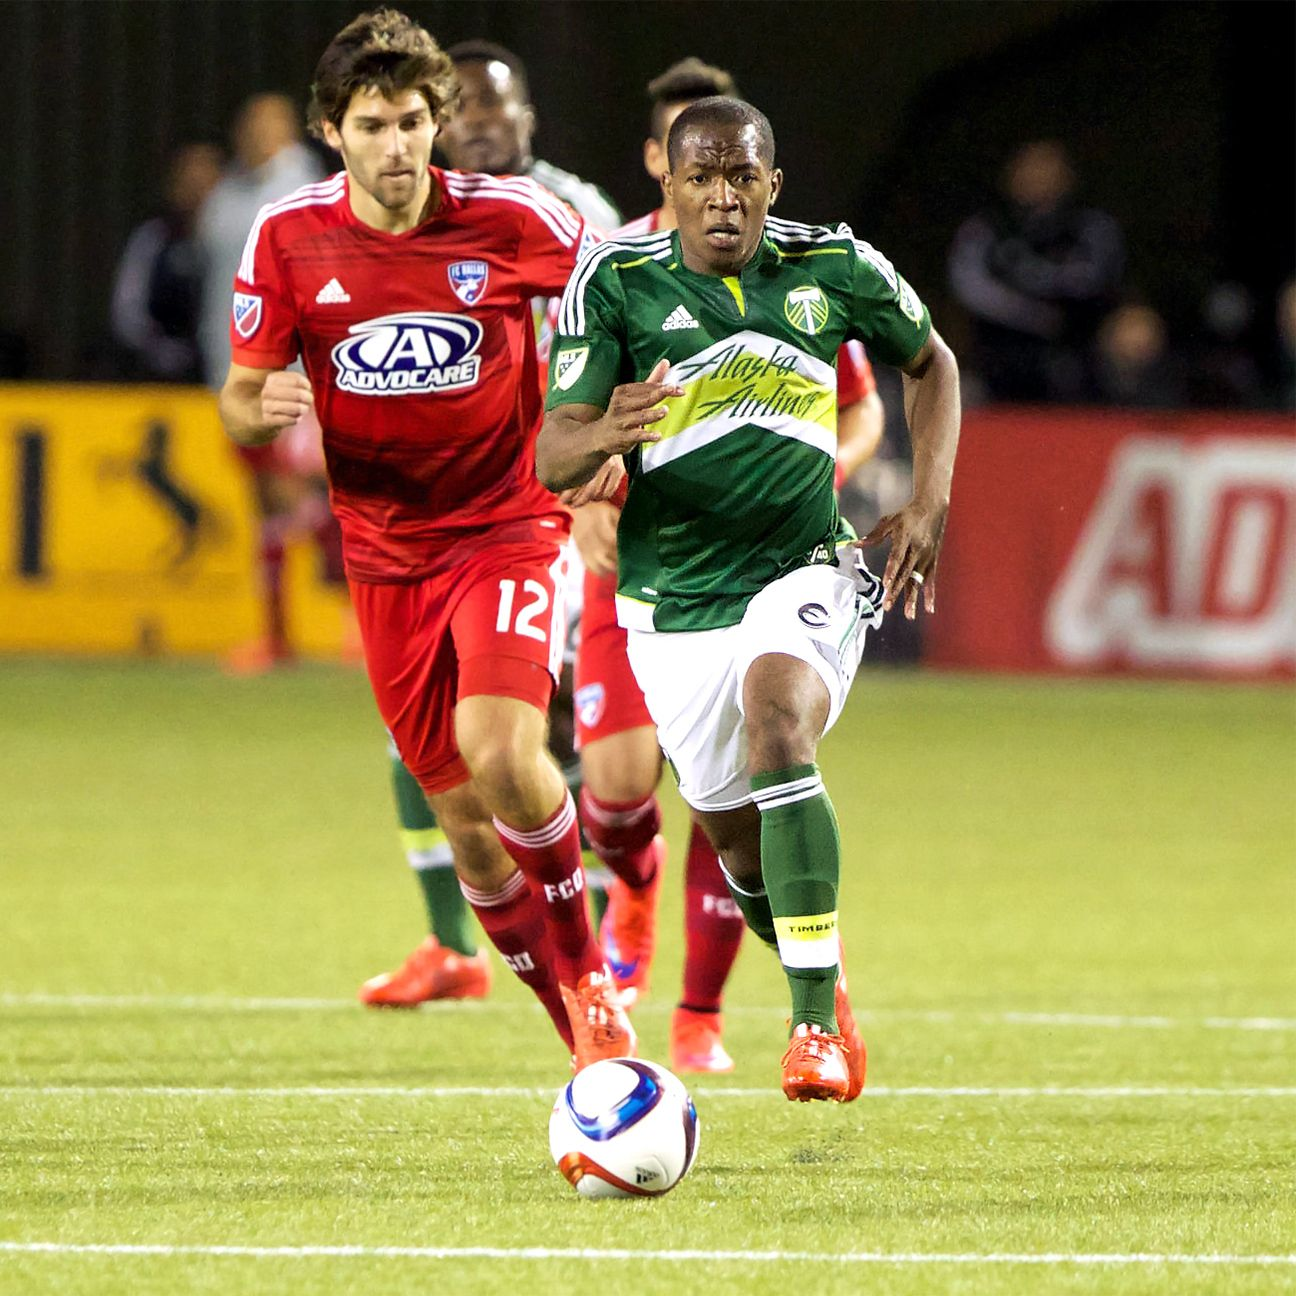 Darlington Nagbe and the Portland Timbers will need to be at their best to overcome a tough FC Dallas team.